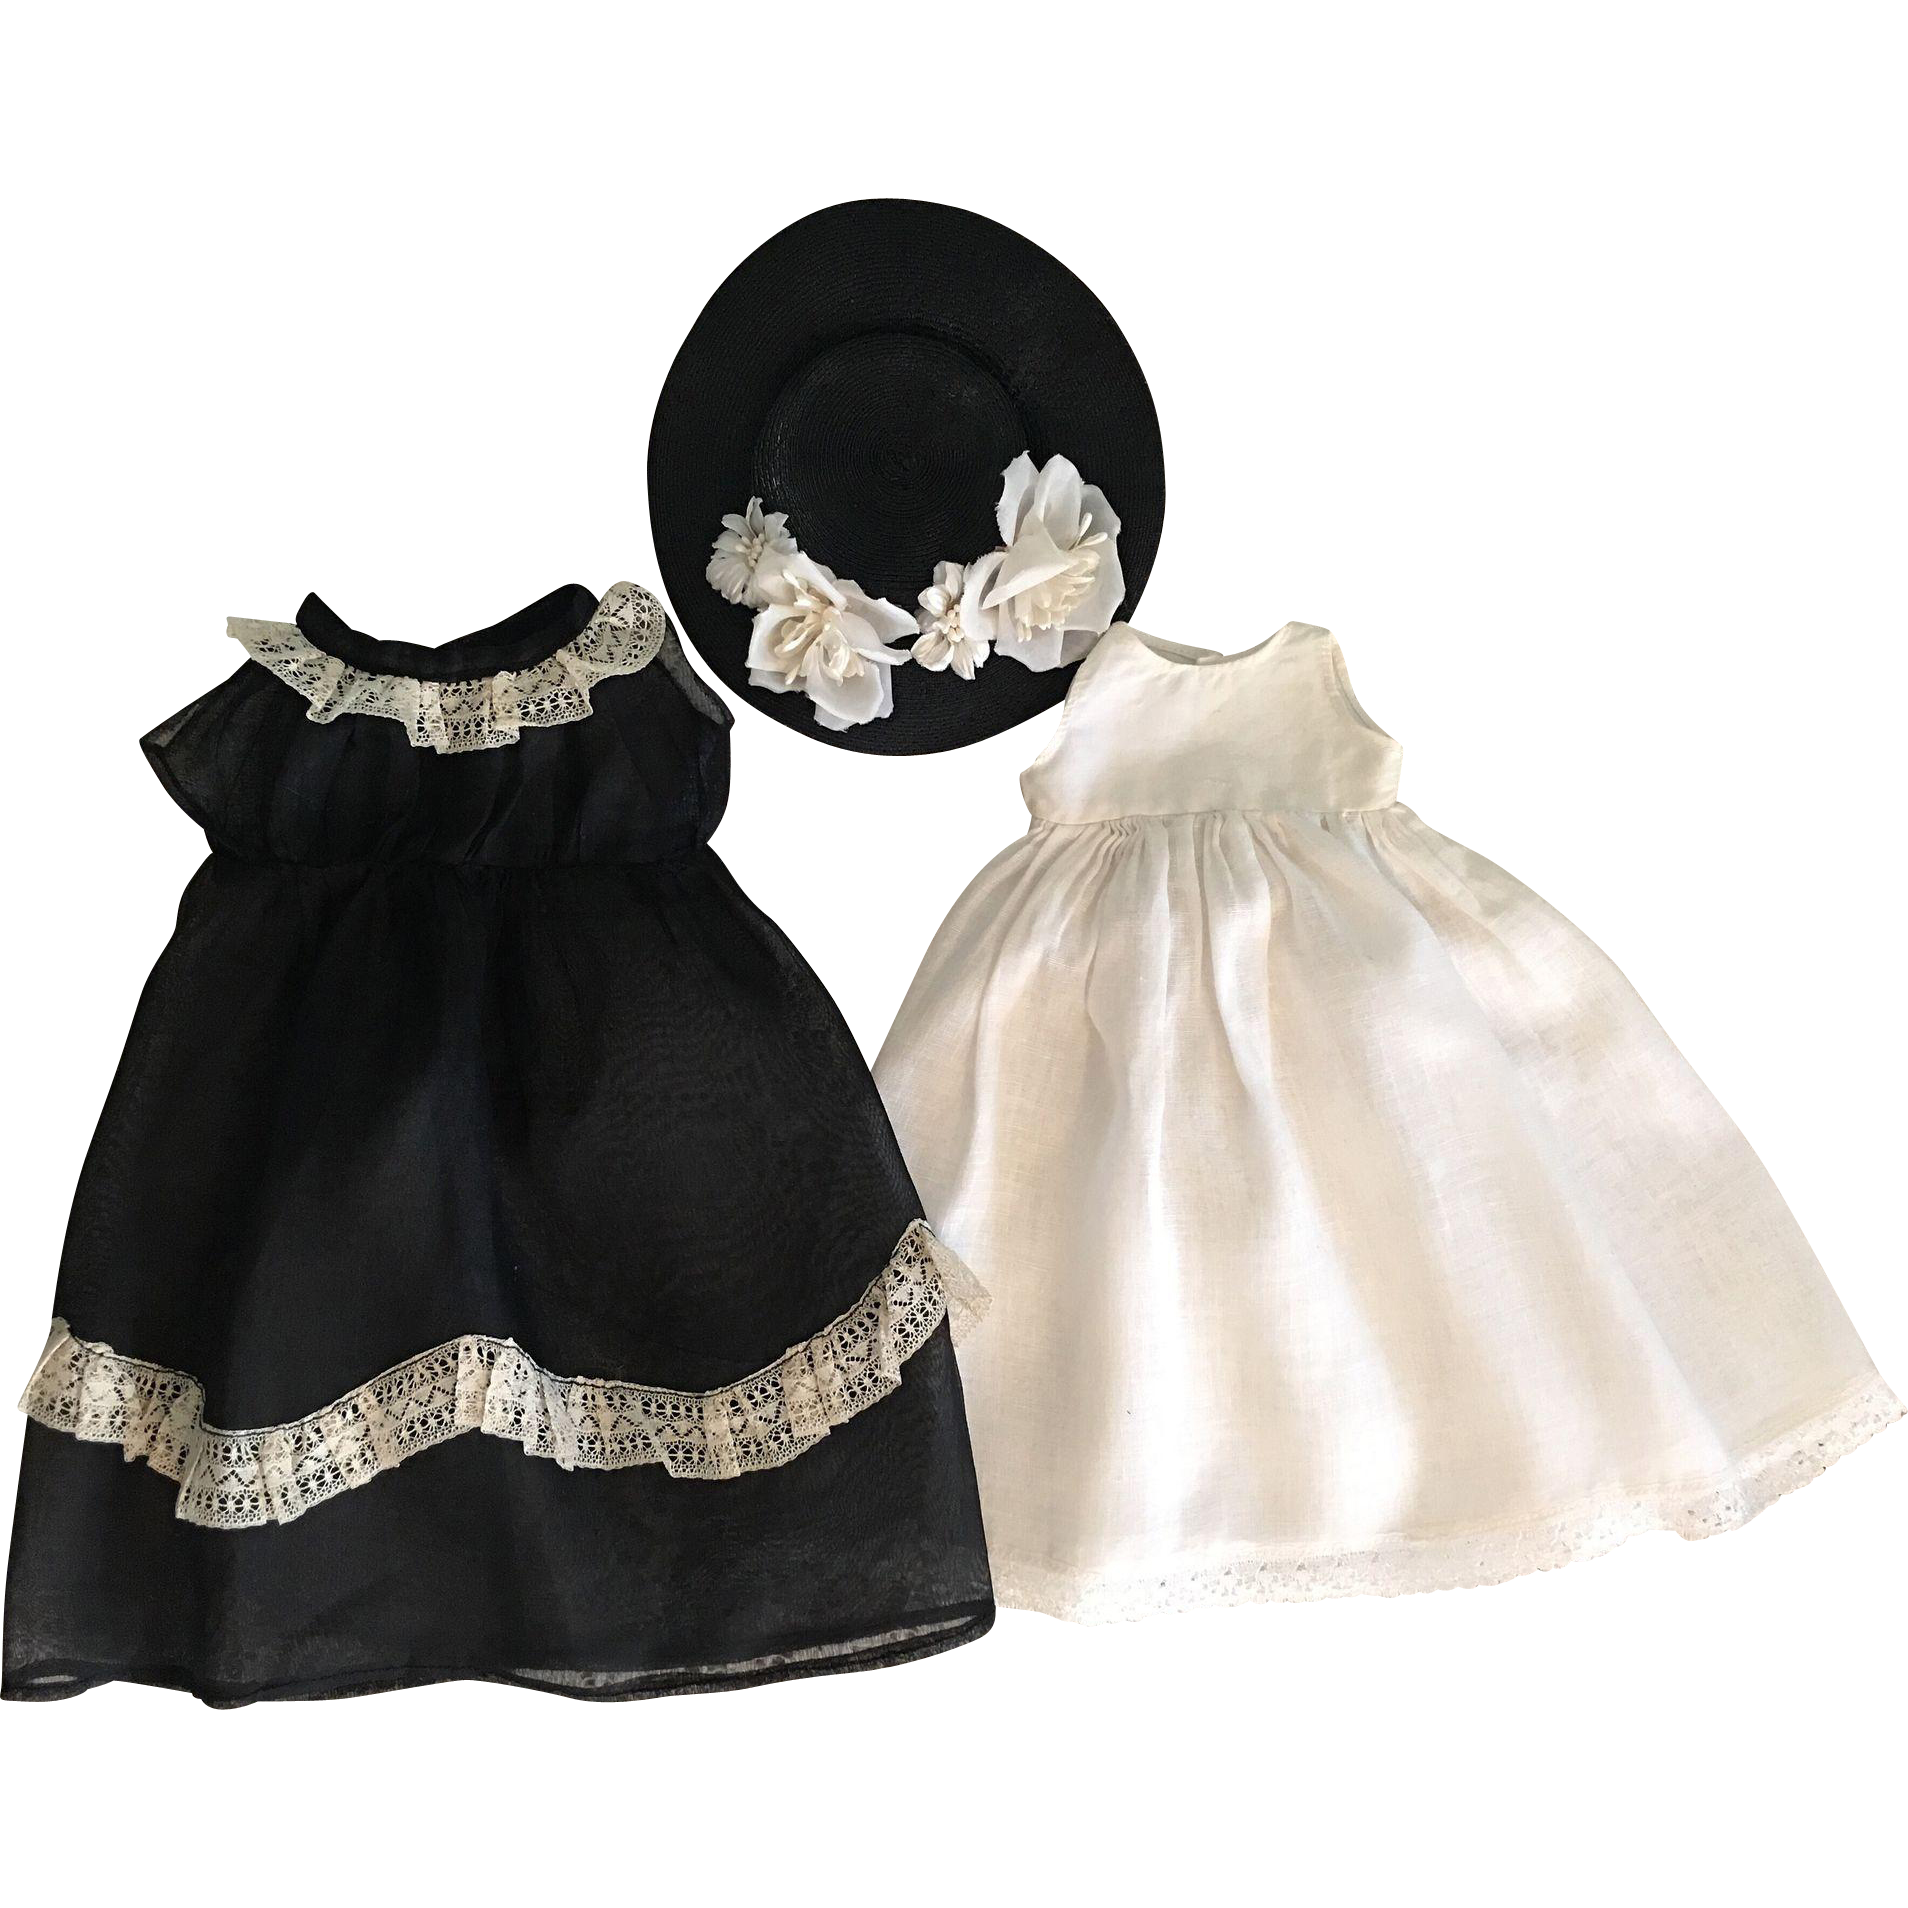 Black Organdy Dress, Straw Hat with Flowers, and Slip for Bisque Dolls 1910